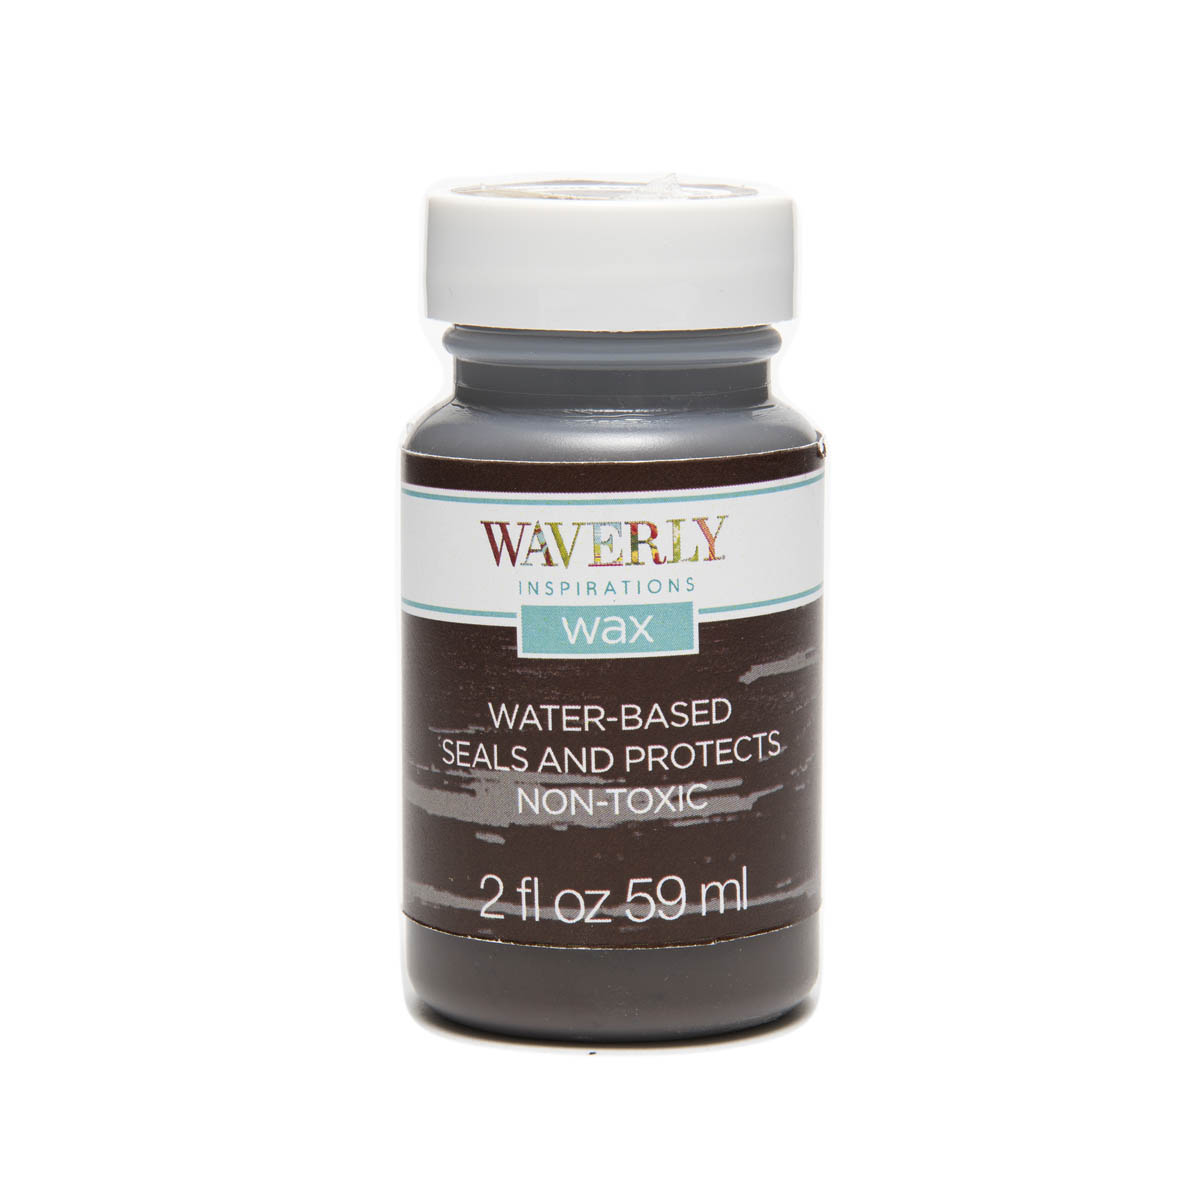 Waverly ® Inspirations Wax - Antique, 2 oz.